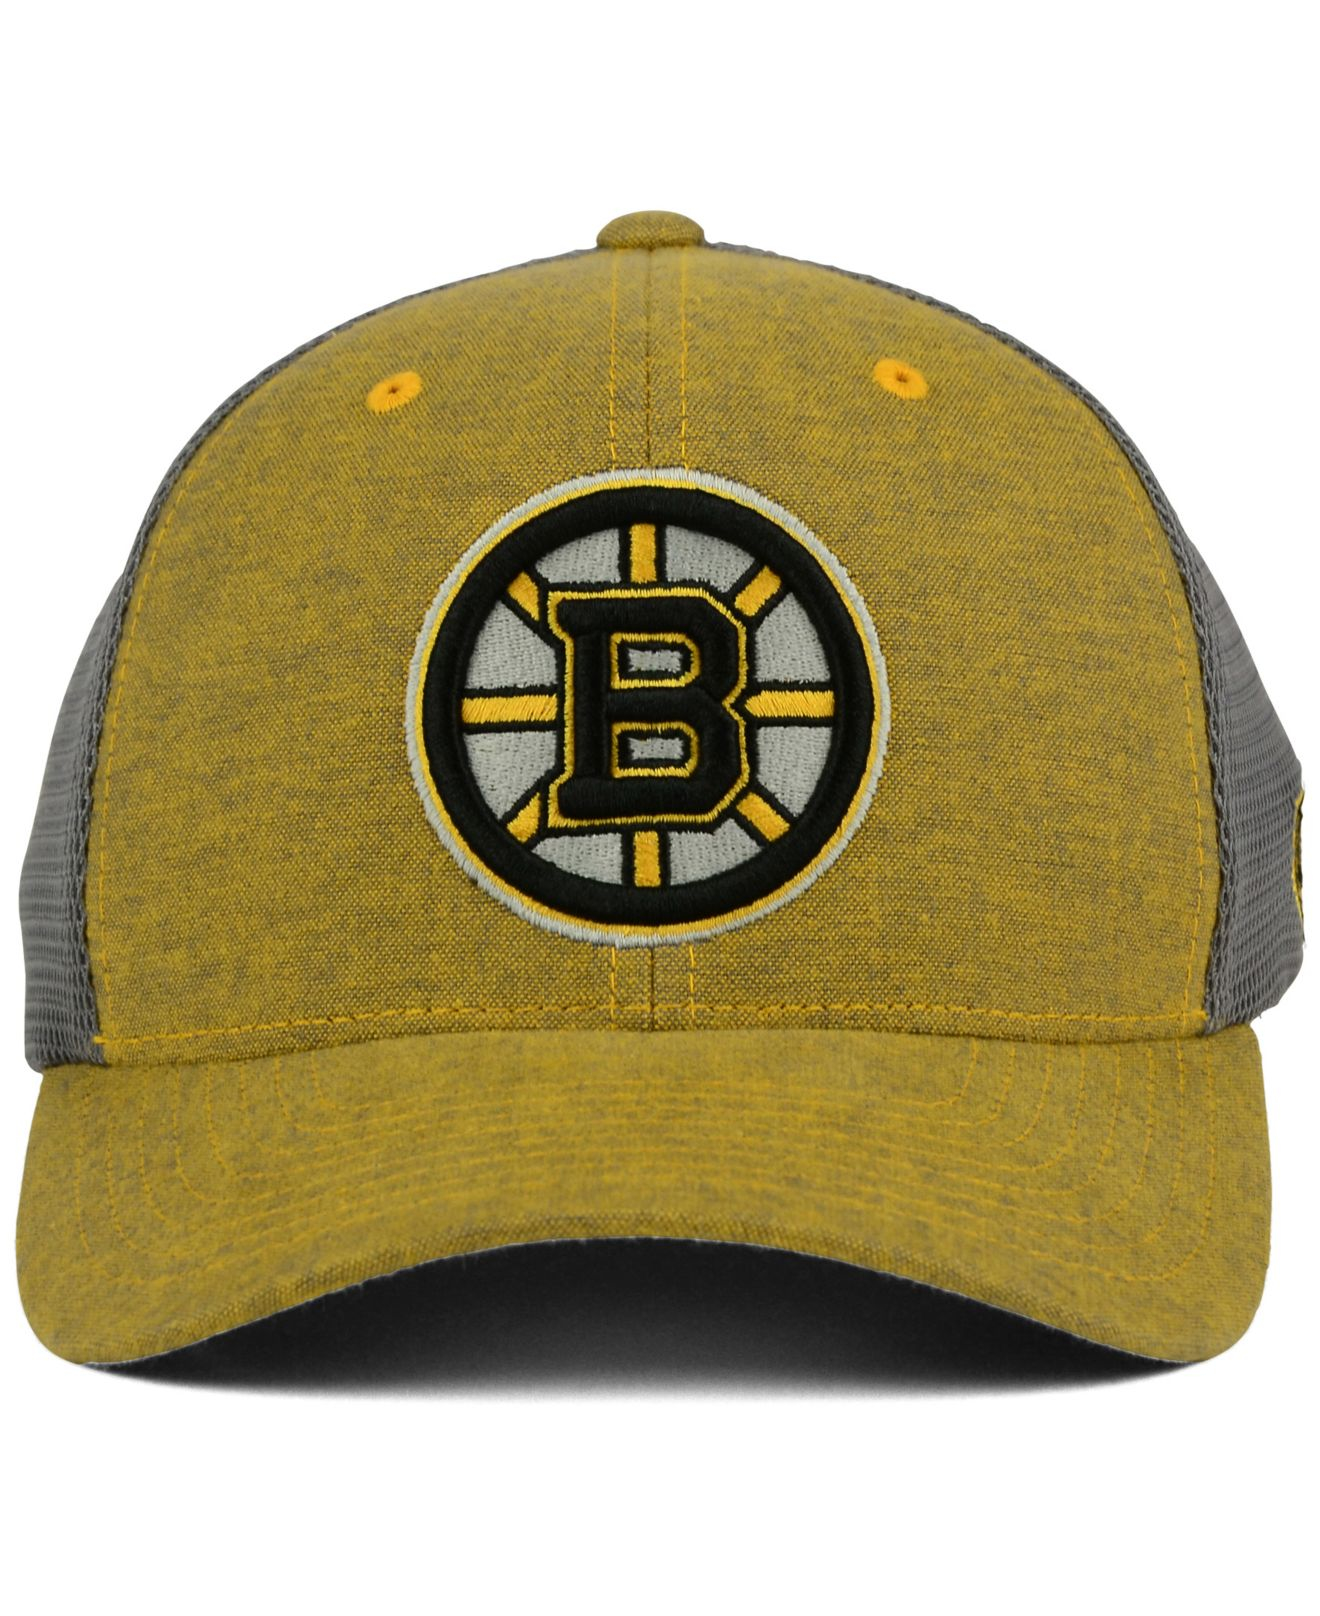 the best attitude 629d7 70369 buy lyst old time hockey boston bruins duster flex cap in natural for men  7acaa d1540